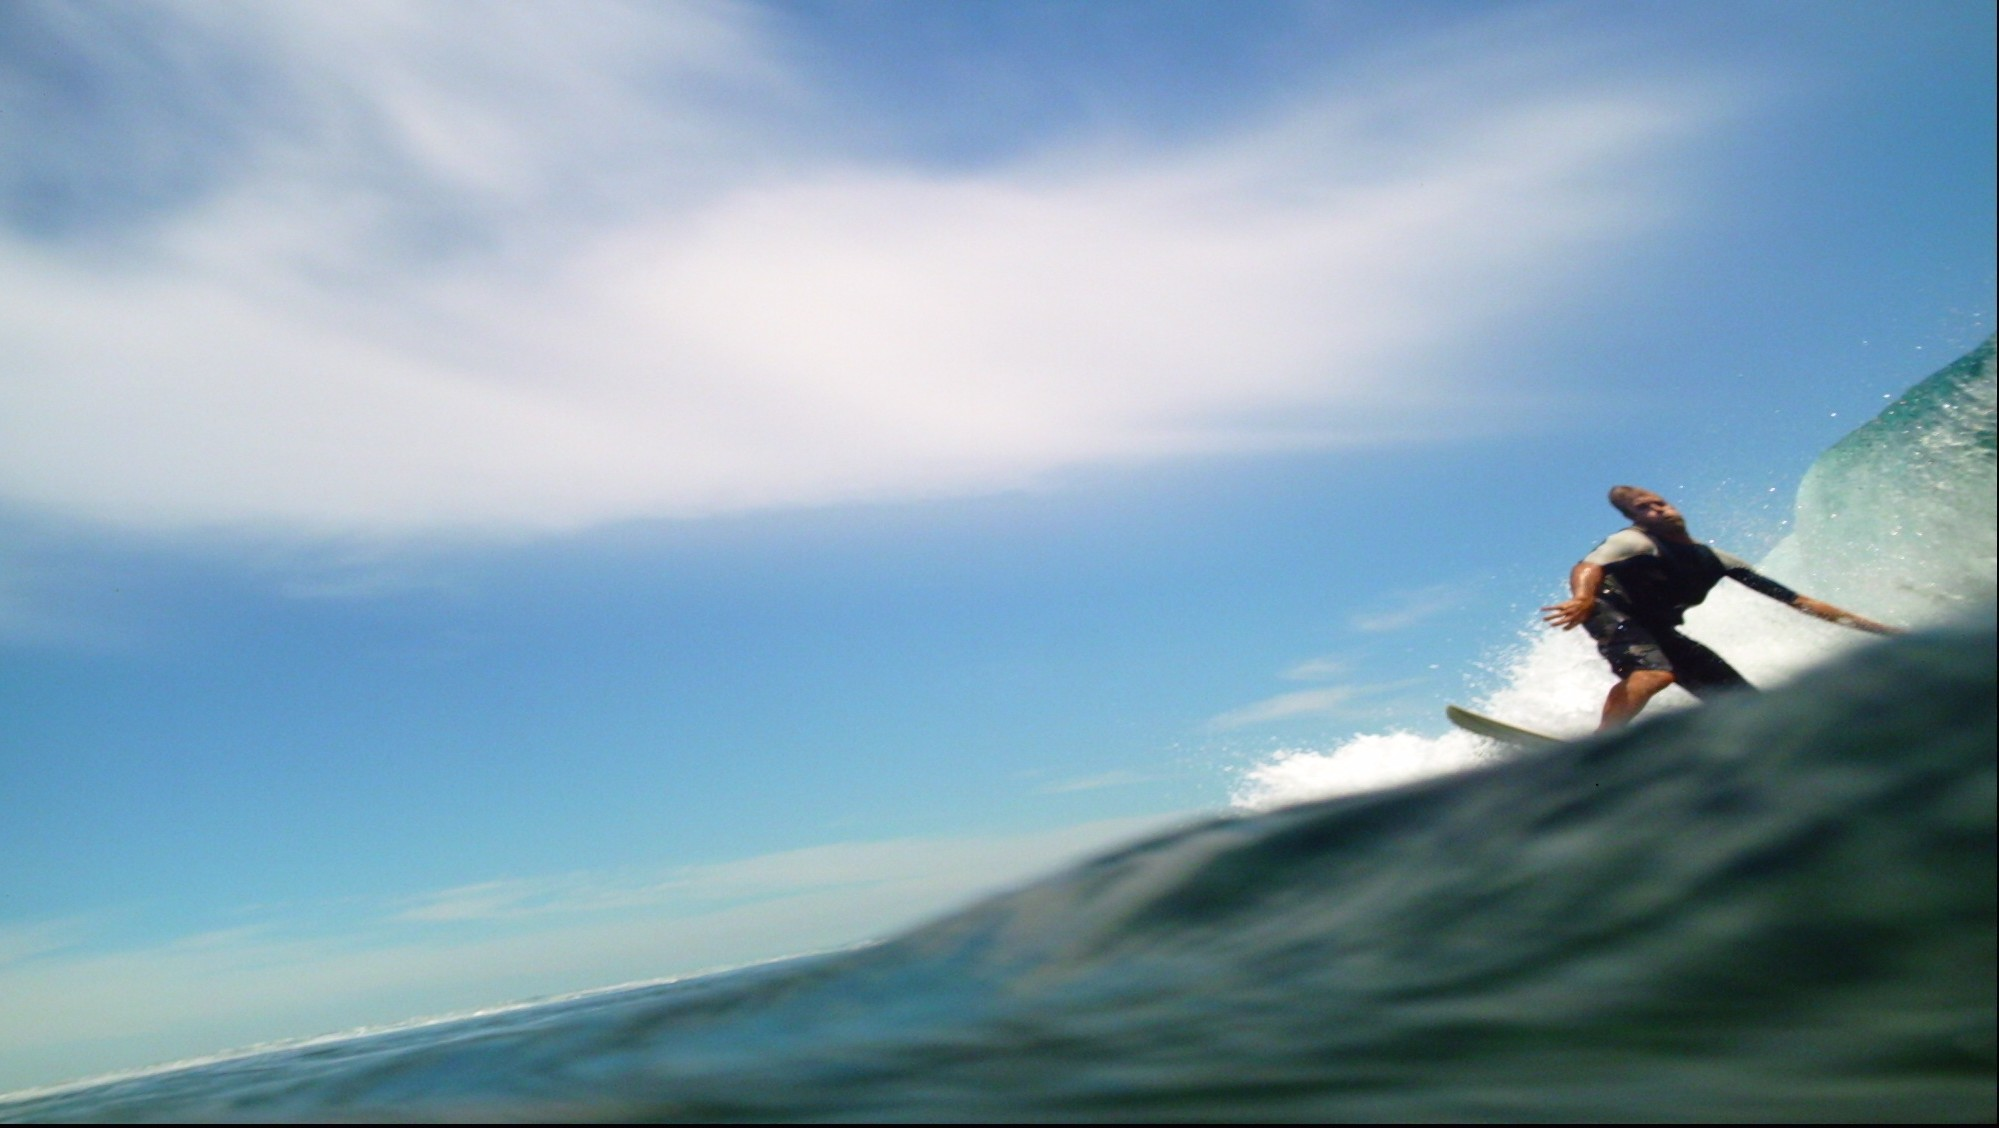 seedicksurf.com - Maui Surf Report and Photos